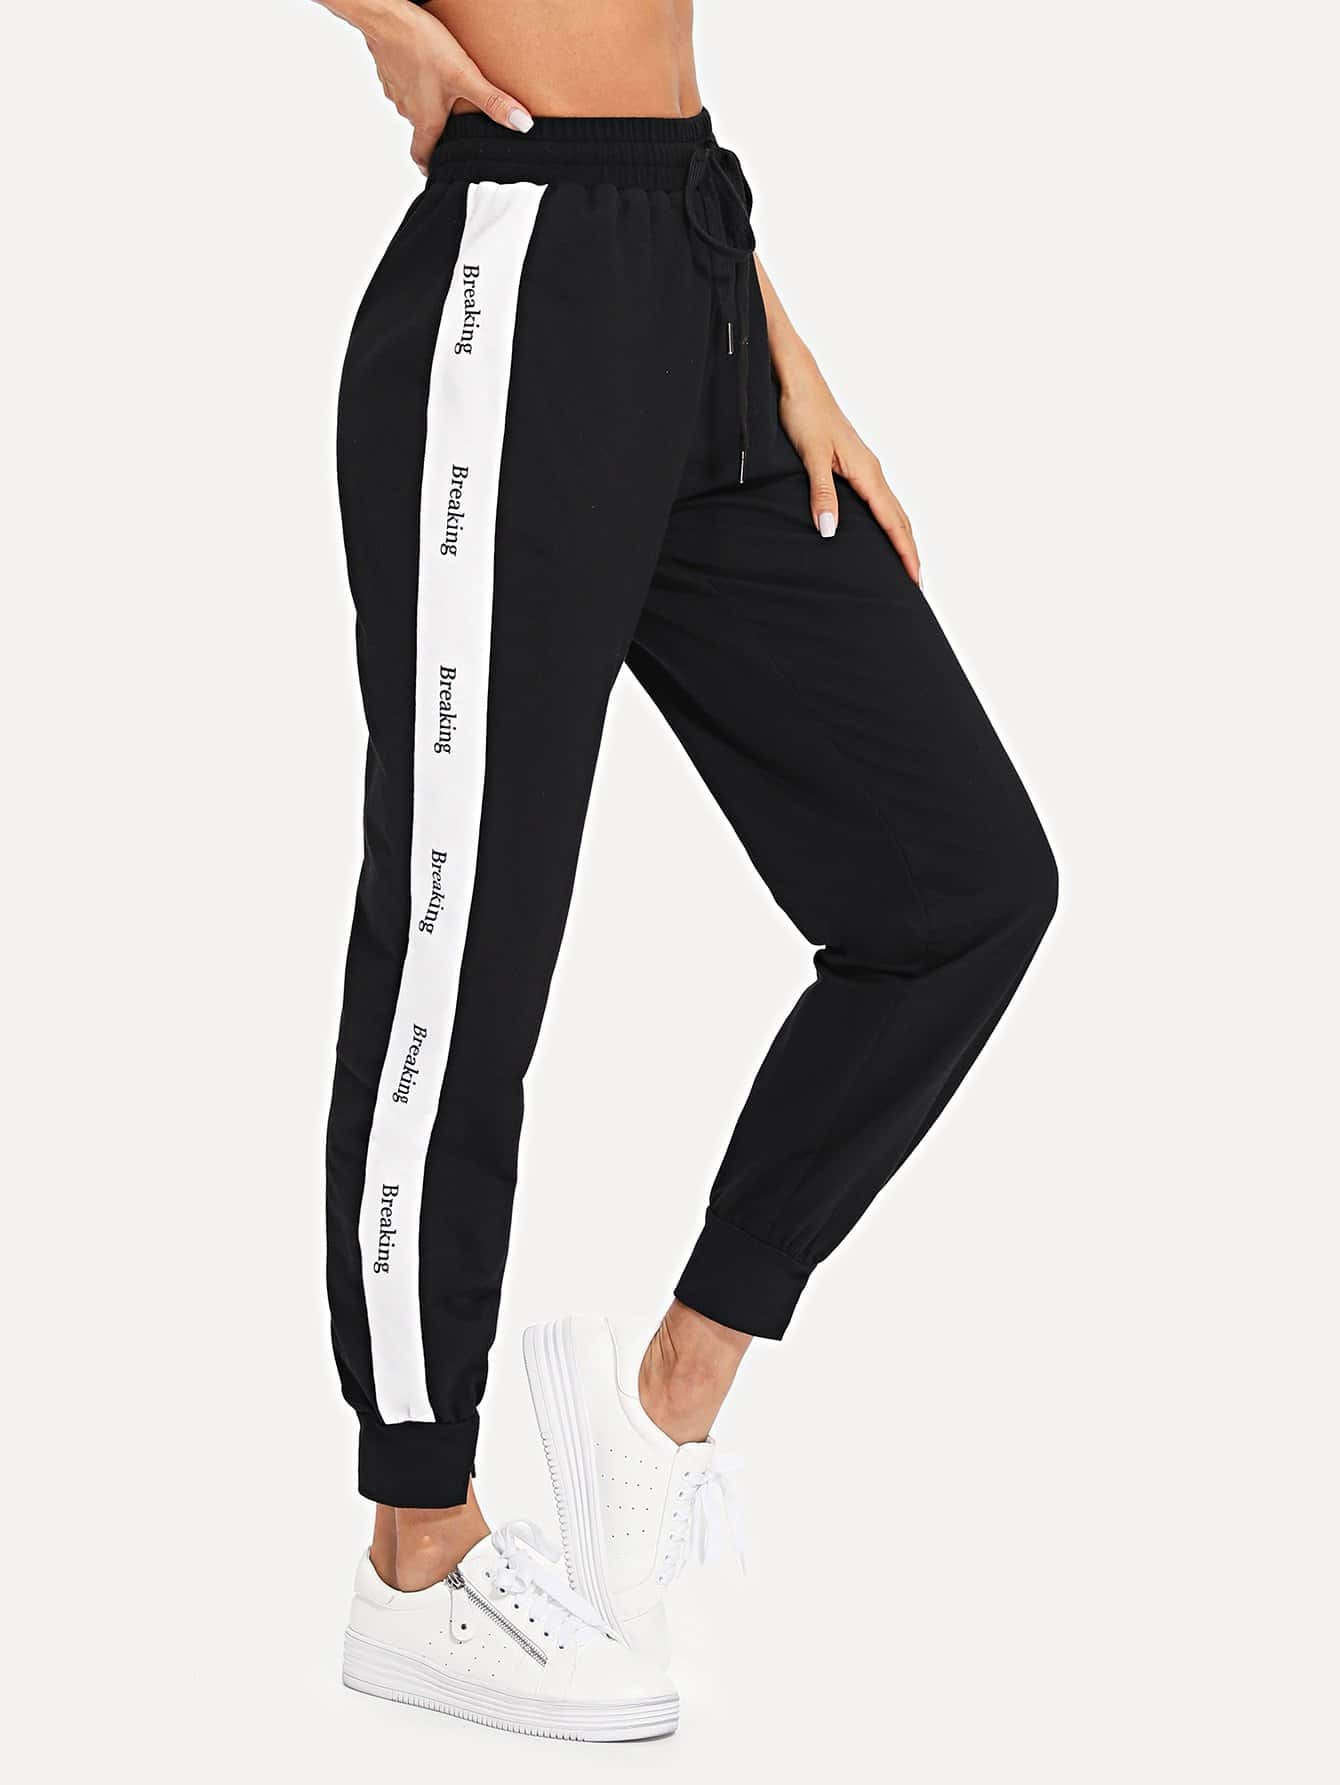 Contrast Tape Side Drawstring Waist Sweatpants contrast striped side sweatpants